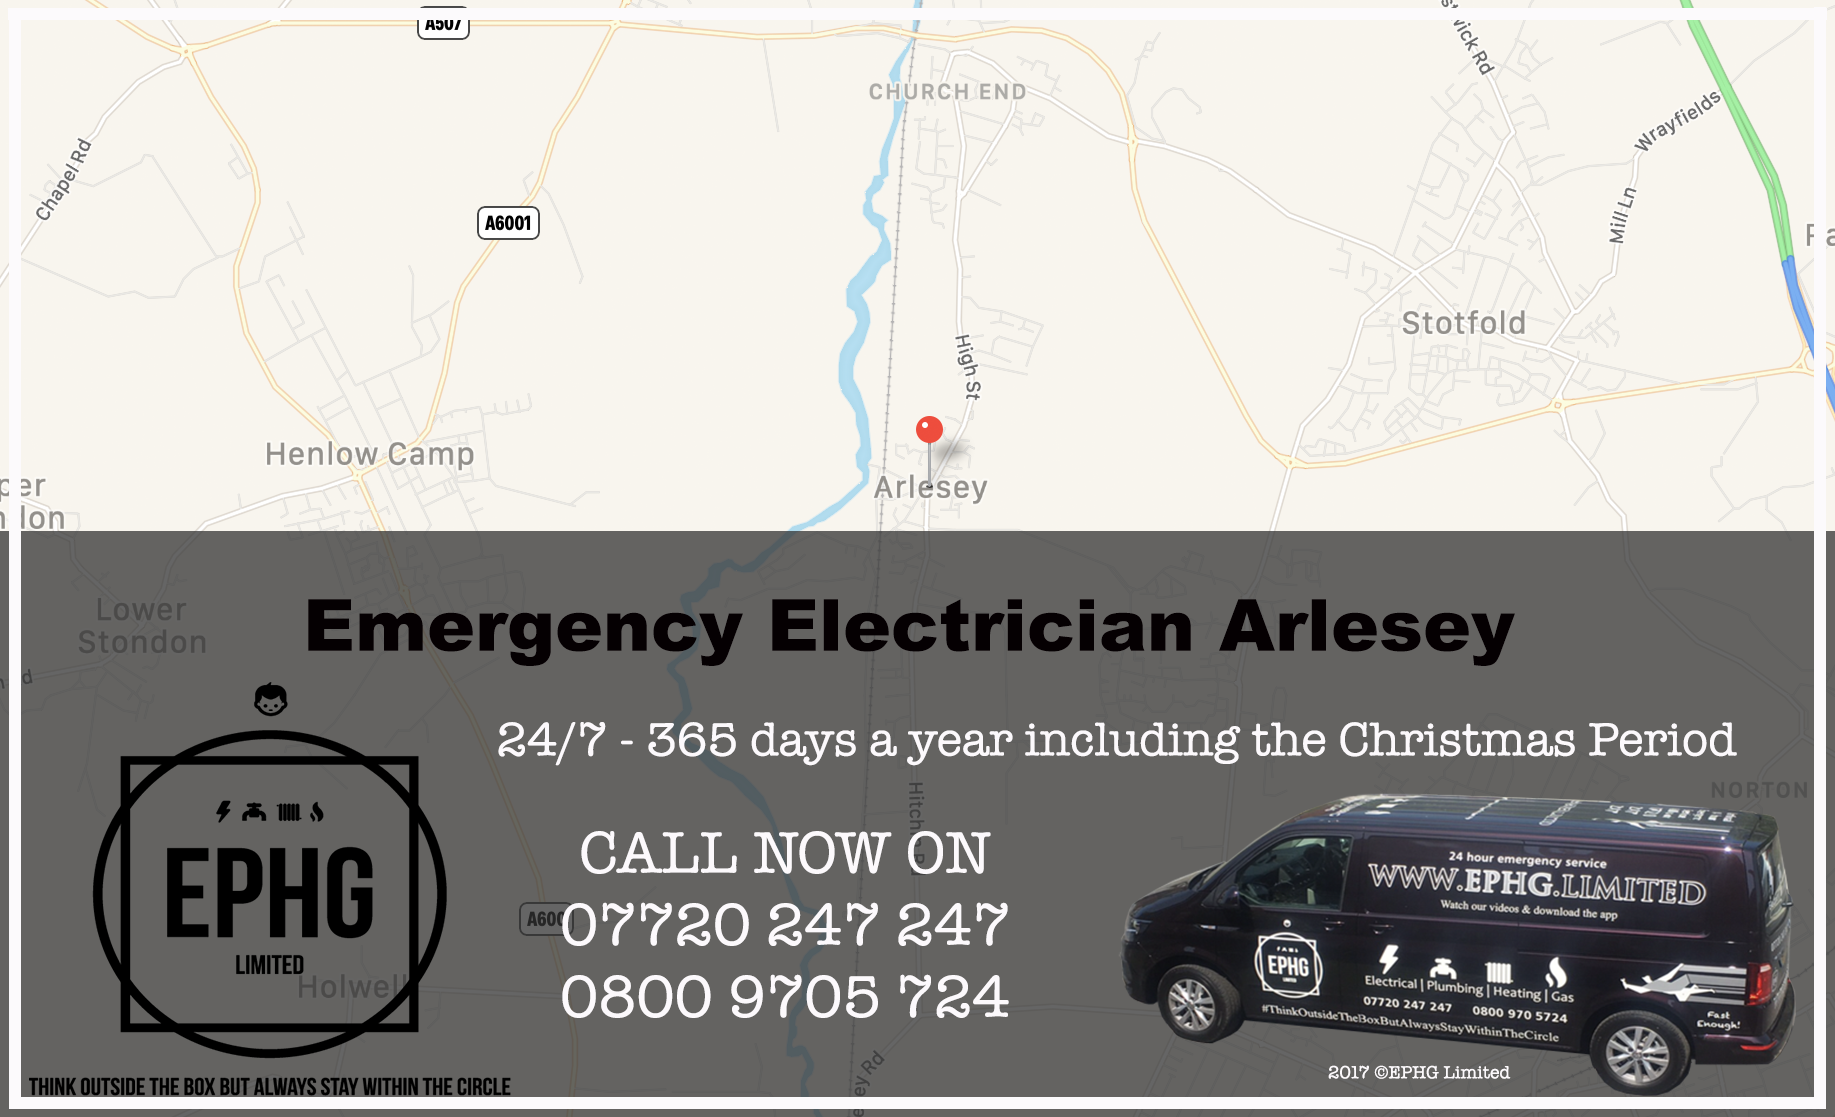 Emergency Electrician Arlesey